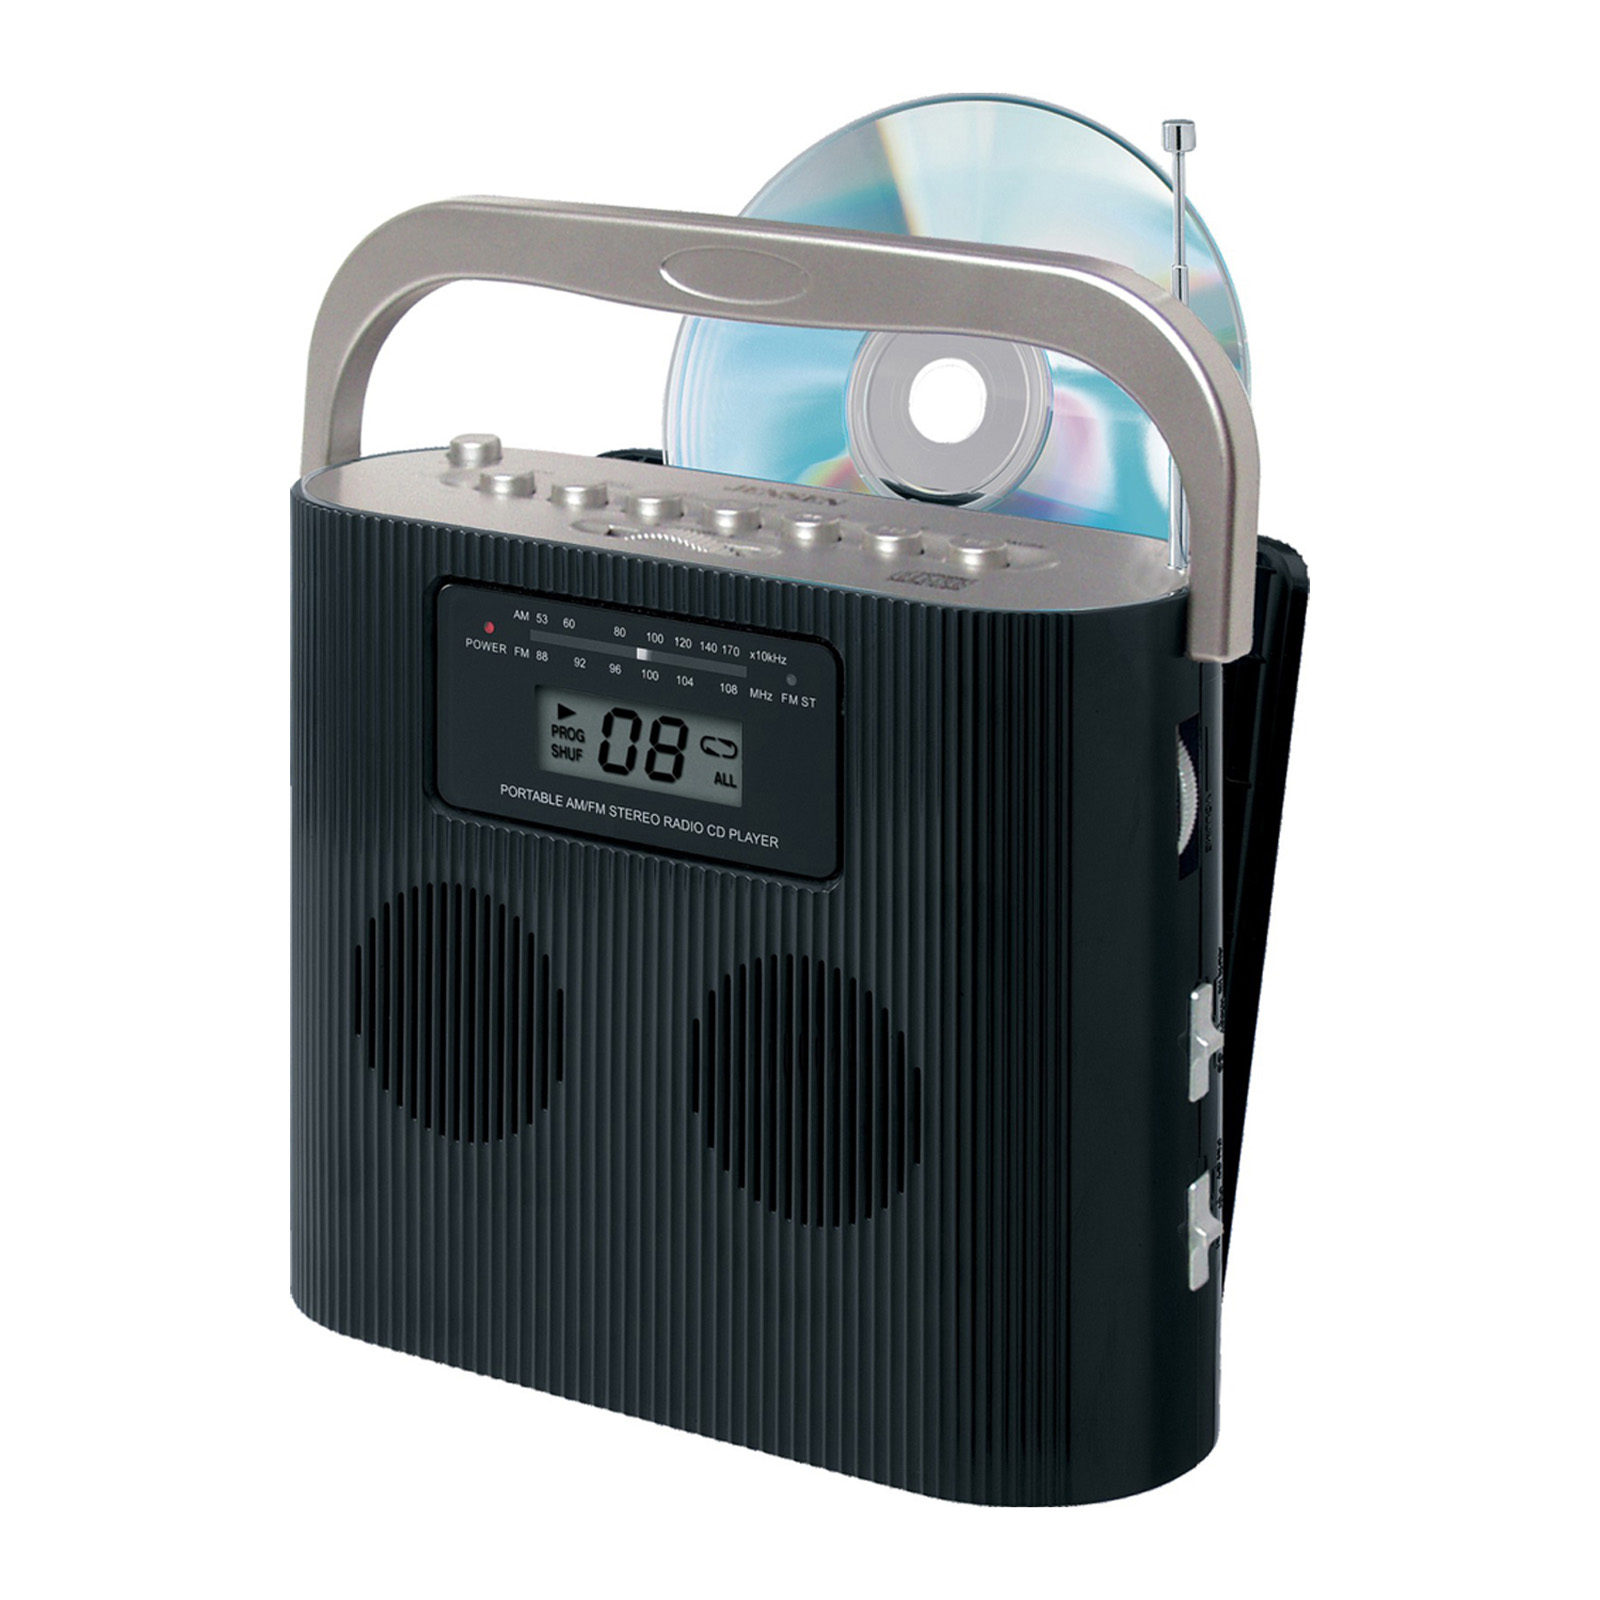 Jensen SMPS-550 Portable Stereo Speaker for iPad/iPad 2